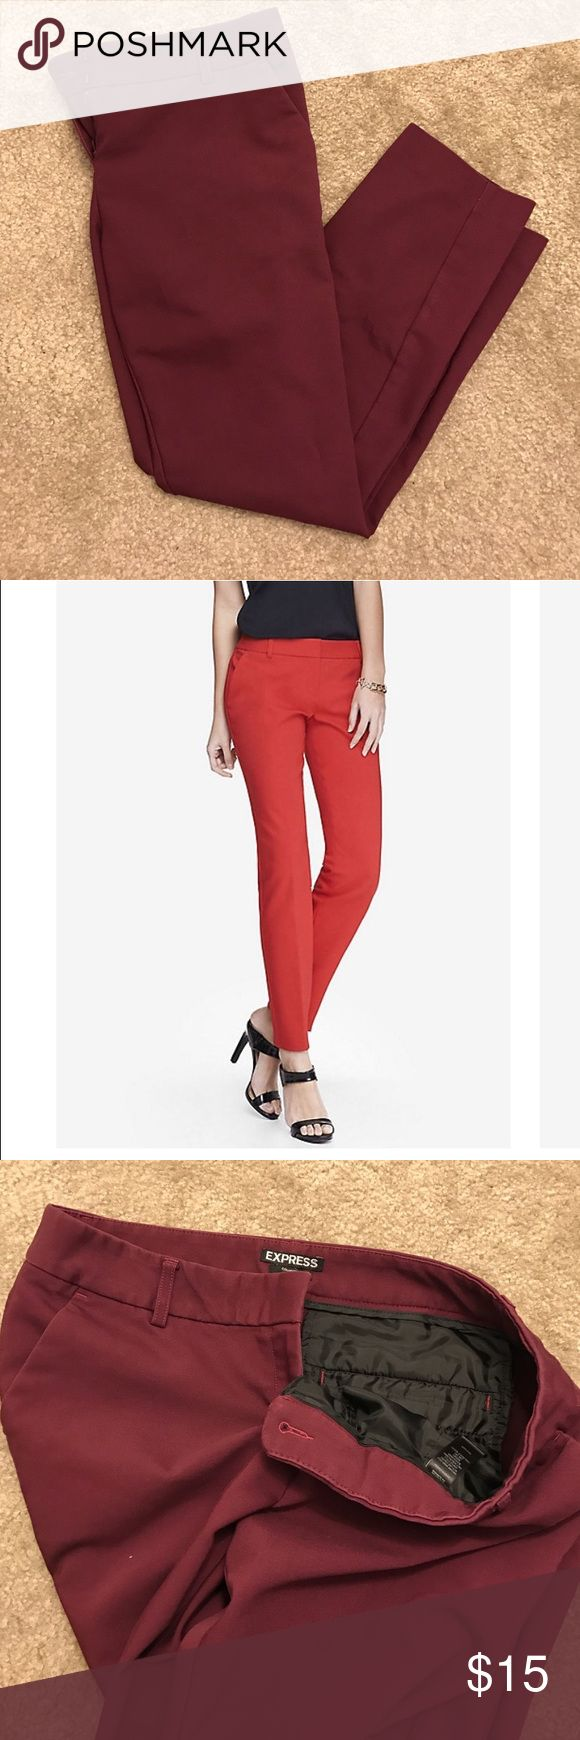 Express ankle pant EXPRESS ankle pant. Dark red. Columnist low rise for. Express Pants Ankle & Cropped